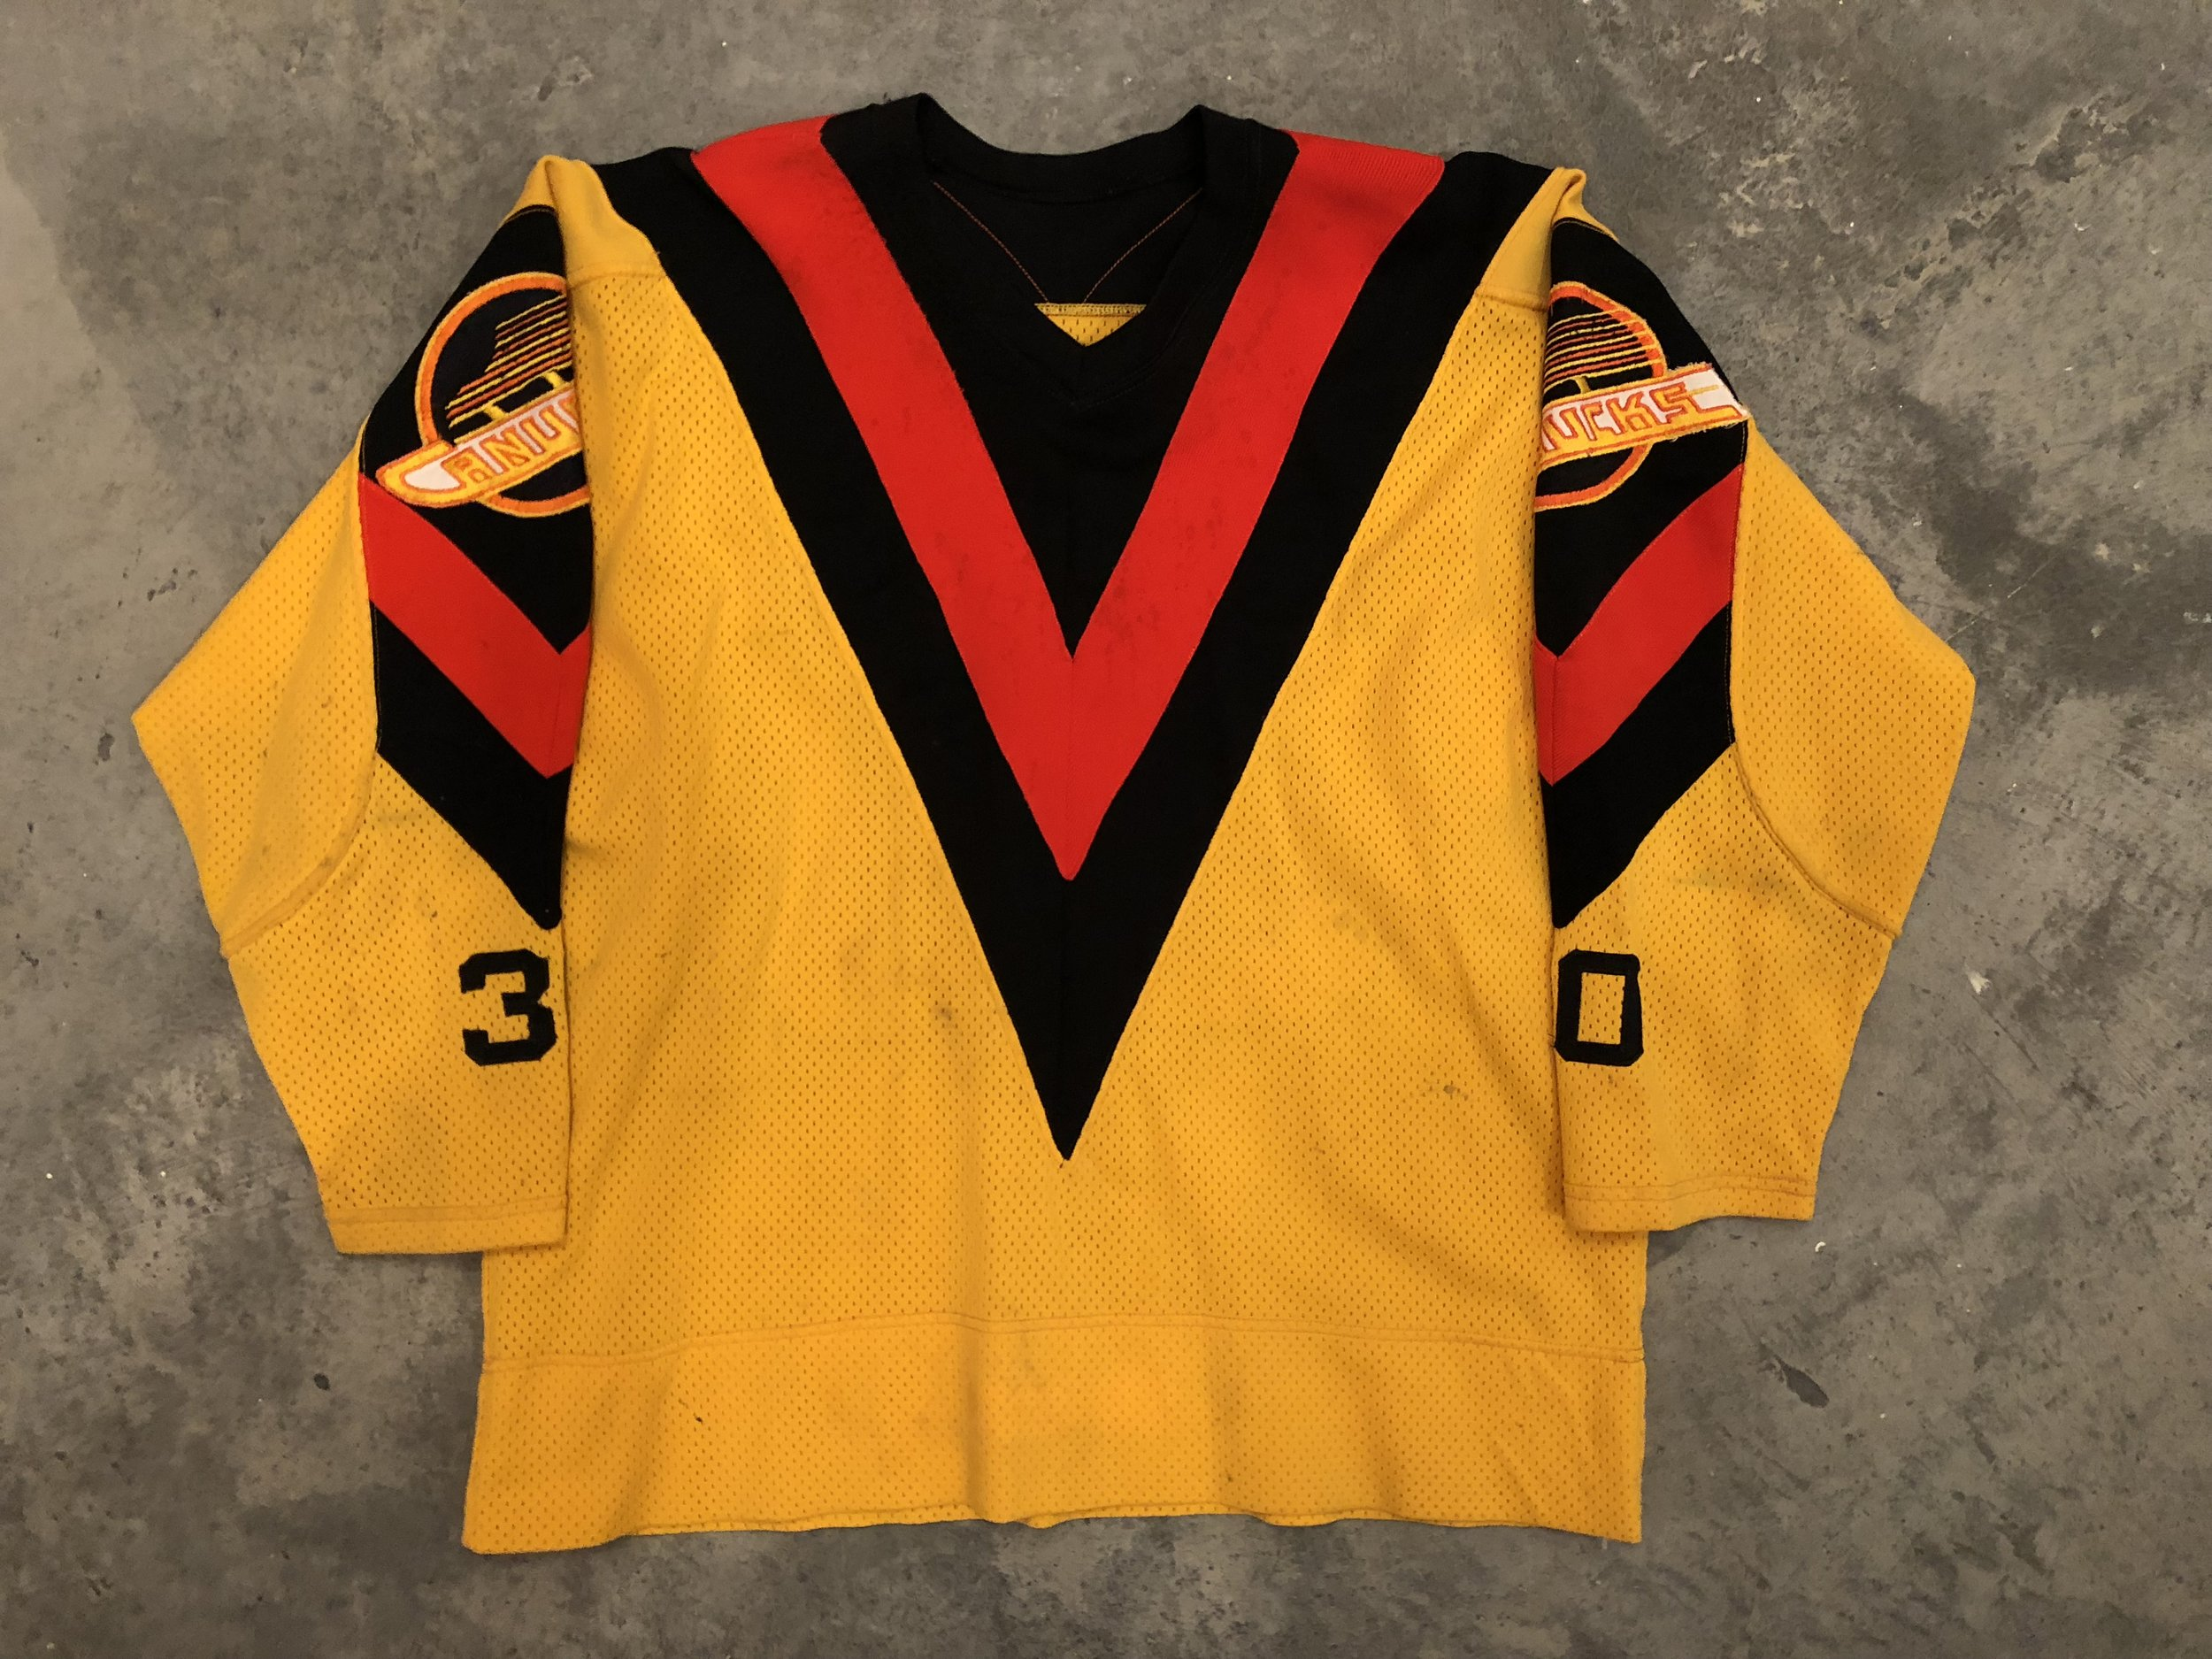 1978-79 Gary Bromley Vancouver Canucks game worn jersey